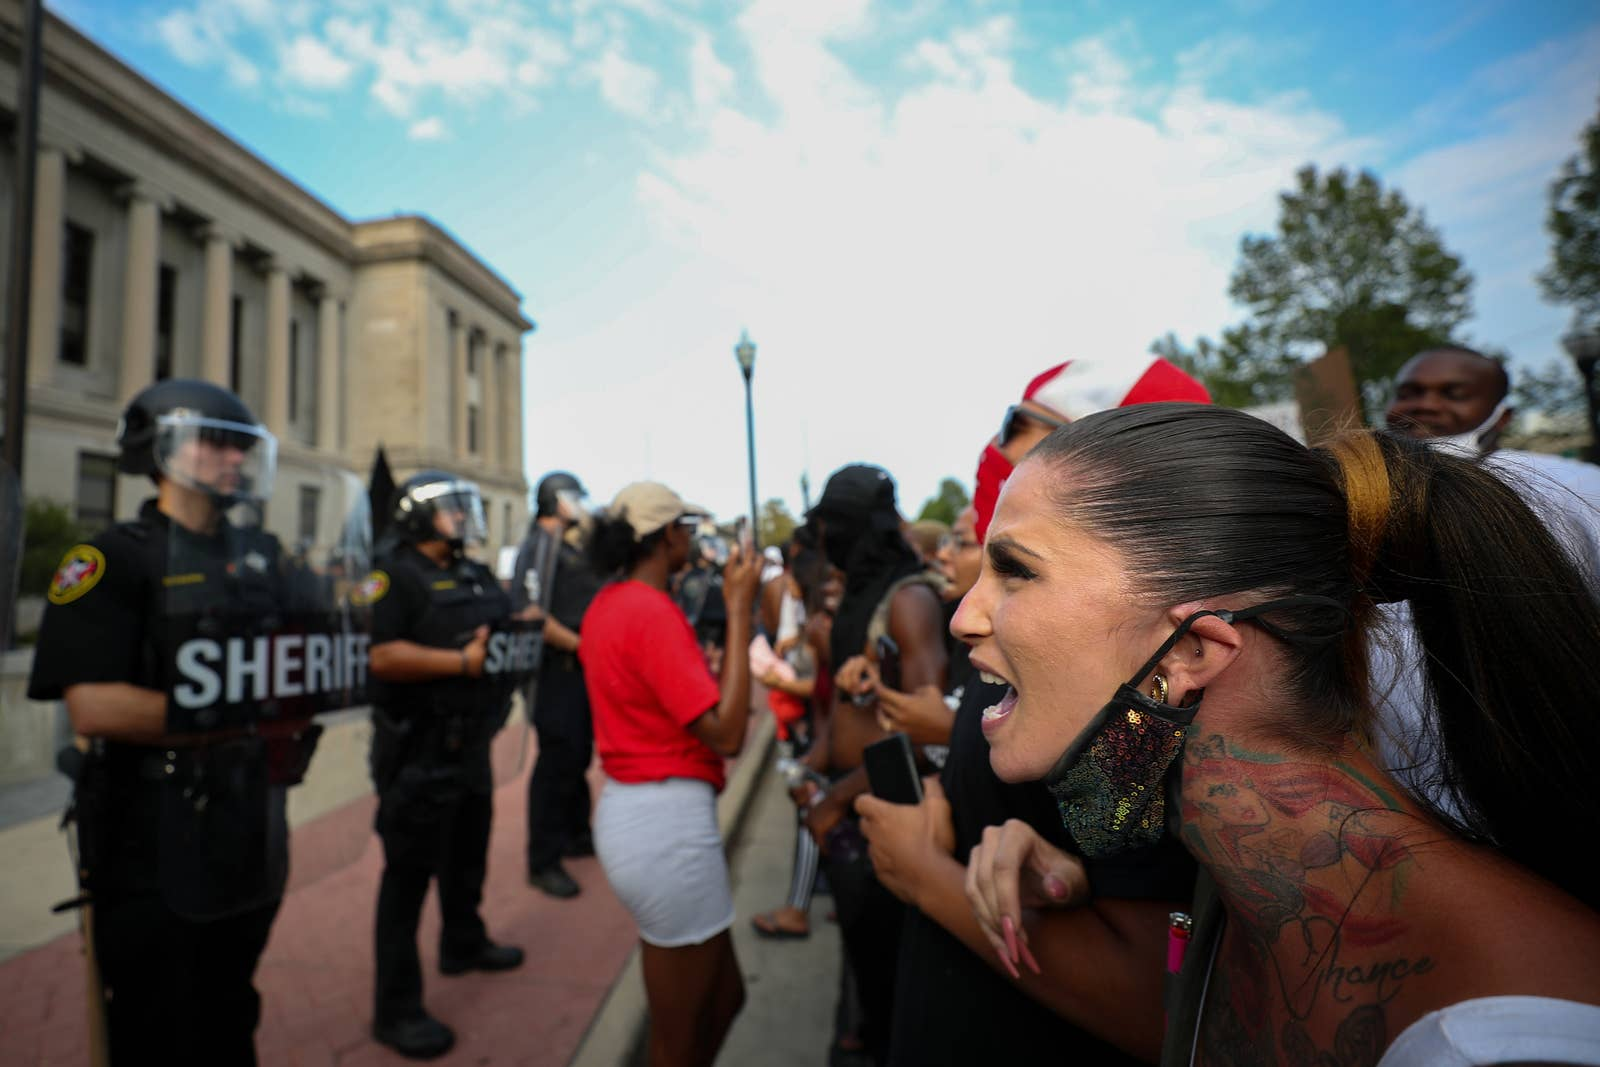 A white woman yells while linking arms with other protesters in front of a line of police in riot gear